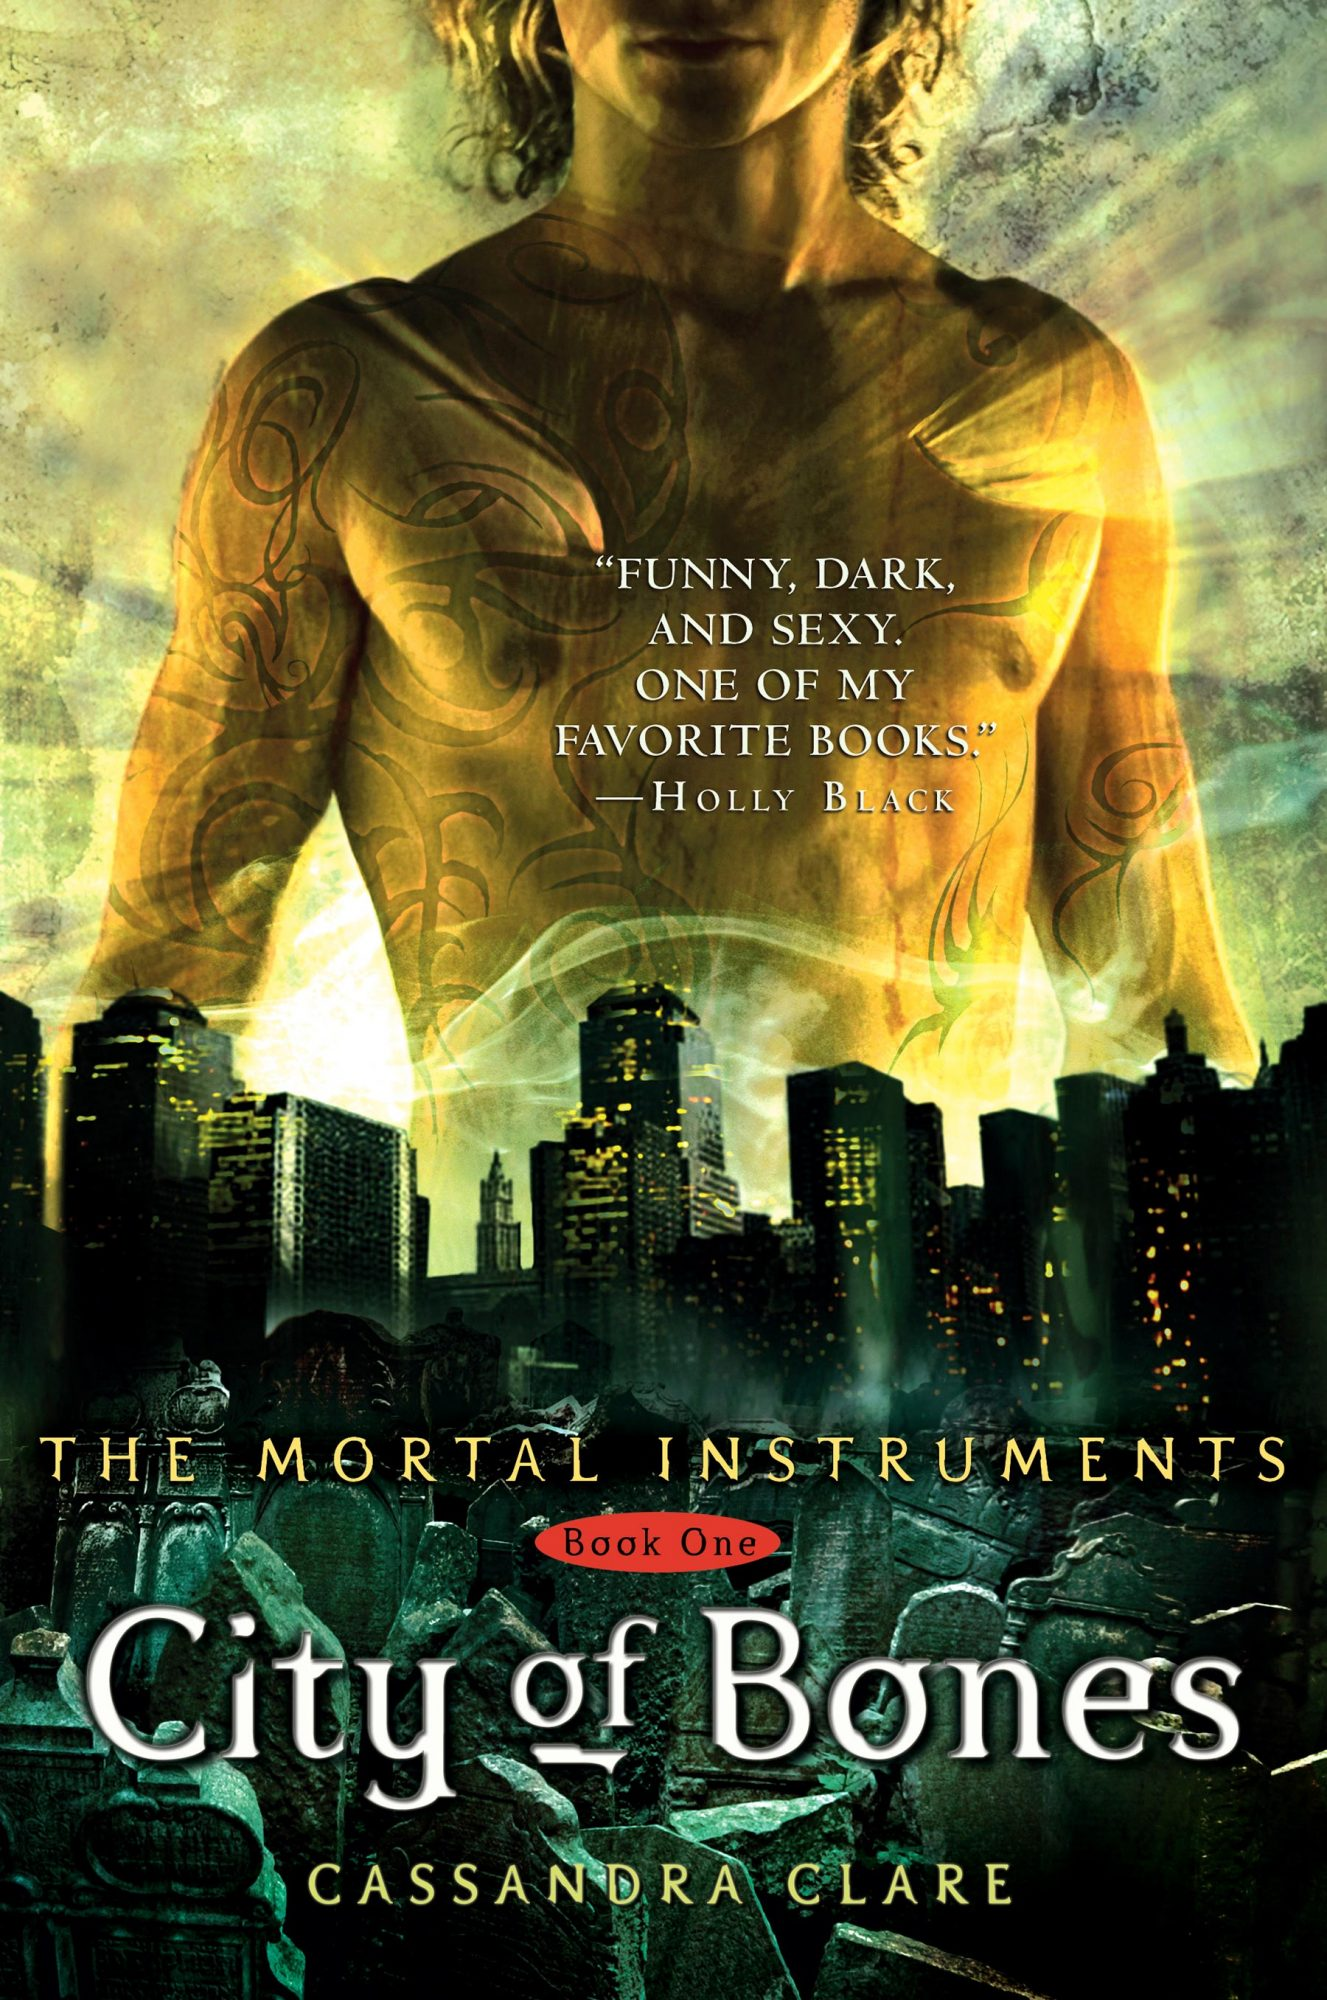 THE MORTAL INSTRUMENTS: CITY OF BONES by Cassandra Clare -- book cover